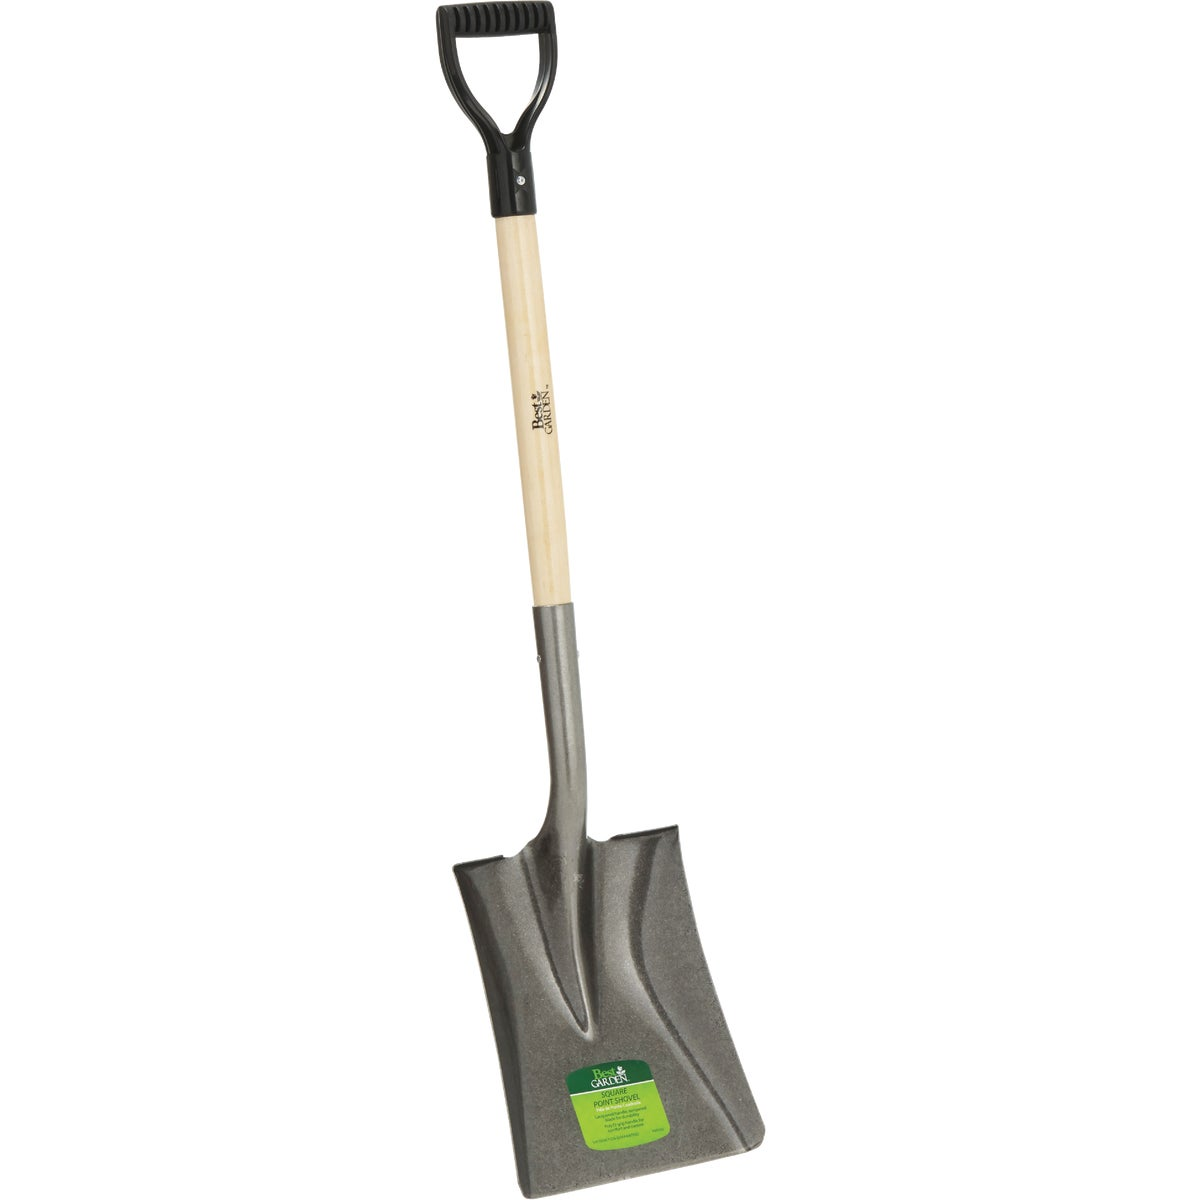 SQ PT WOOD D-HDL SHOVEL - 709530 by Do it Best